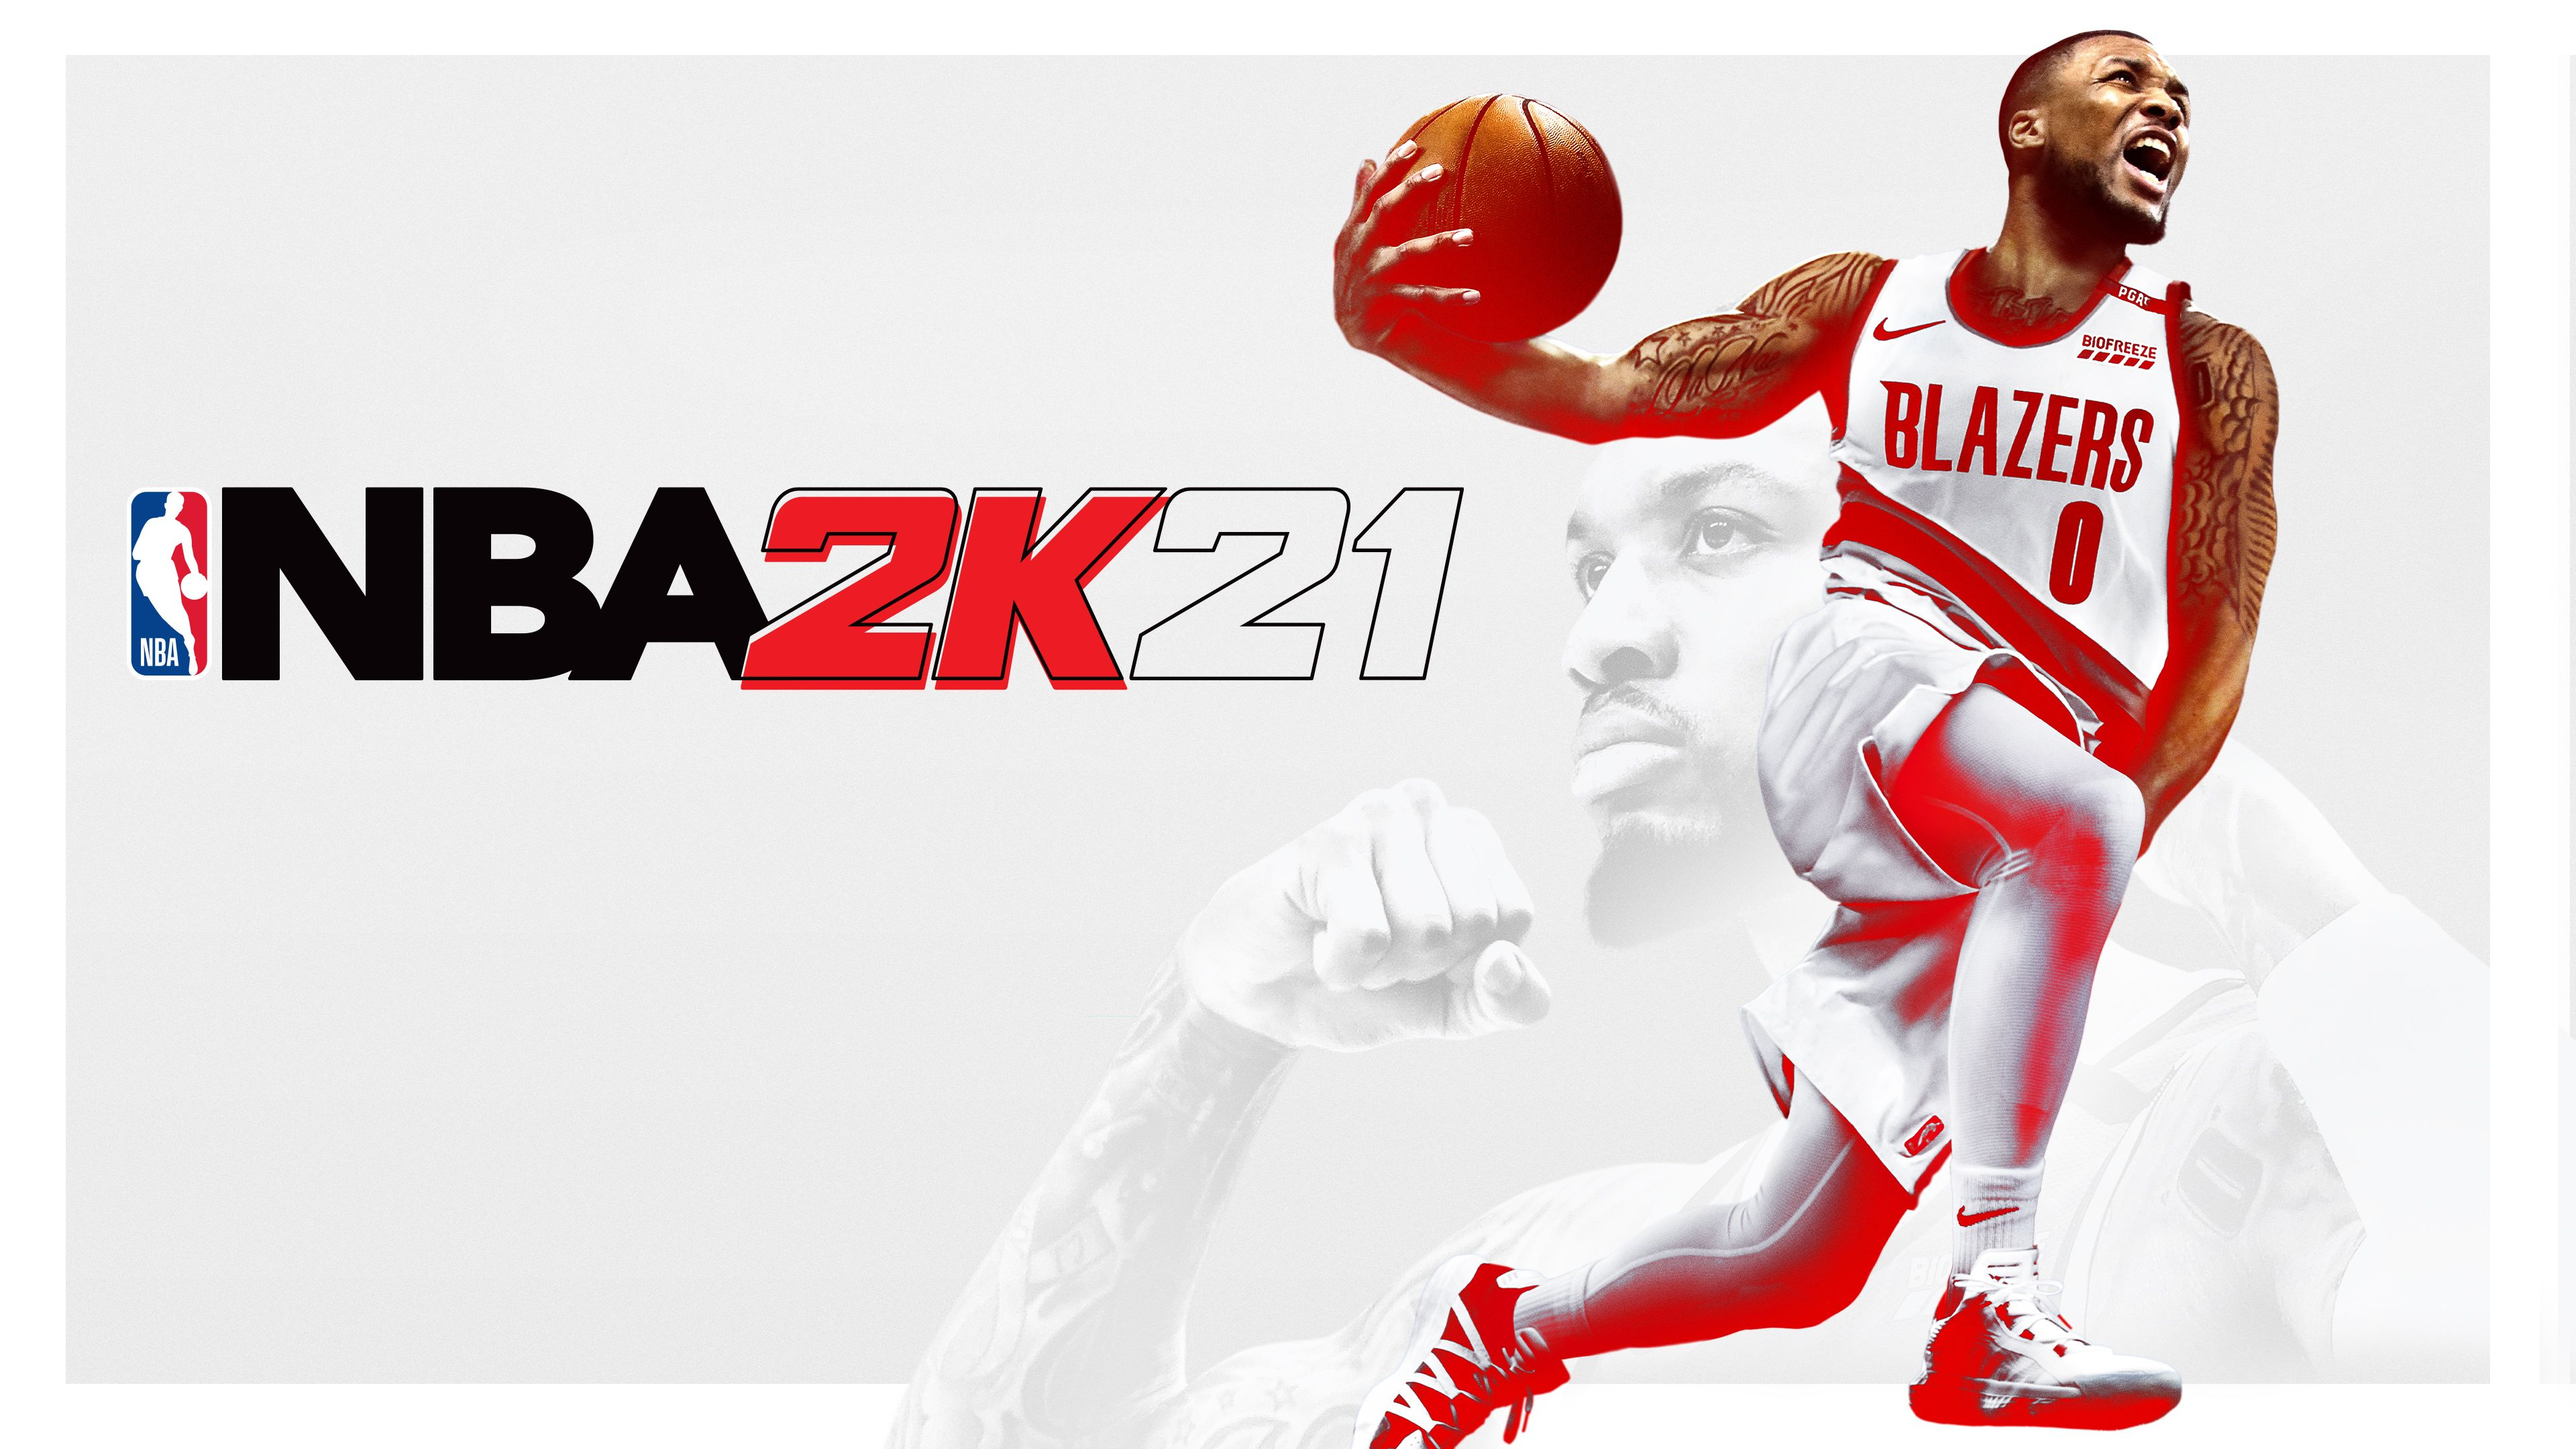 NBA 2K21 (Simplified Chinese, English, Korean, Japanese, Traditional Chinese)